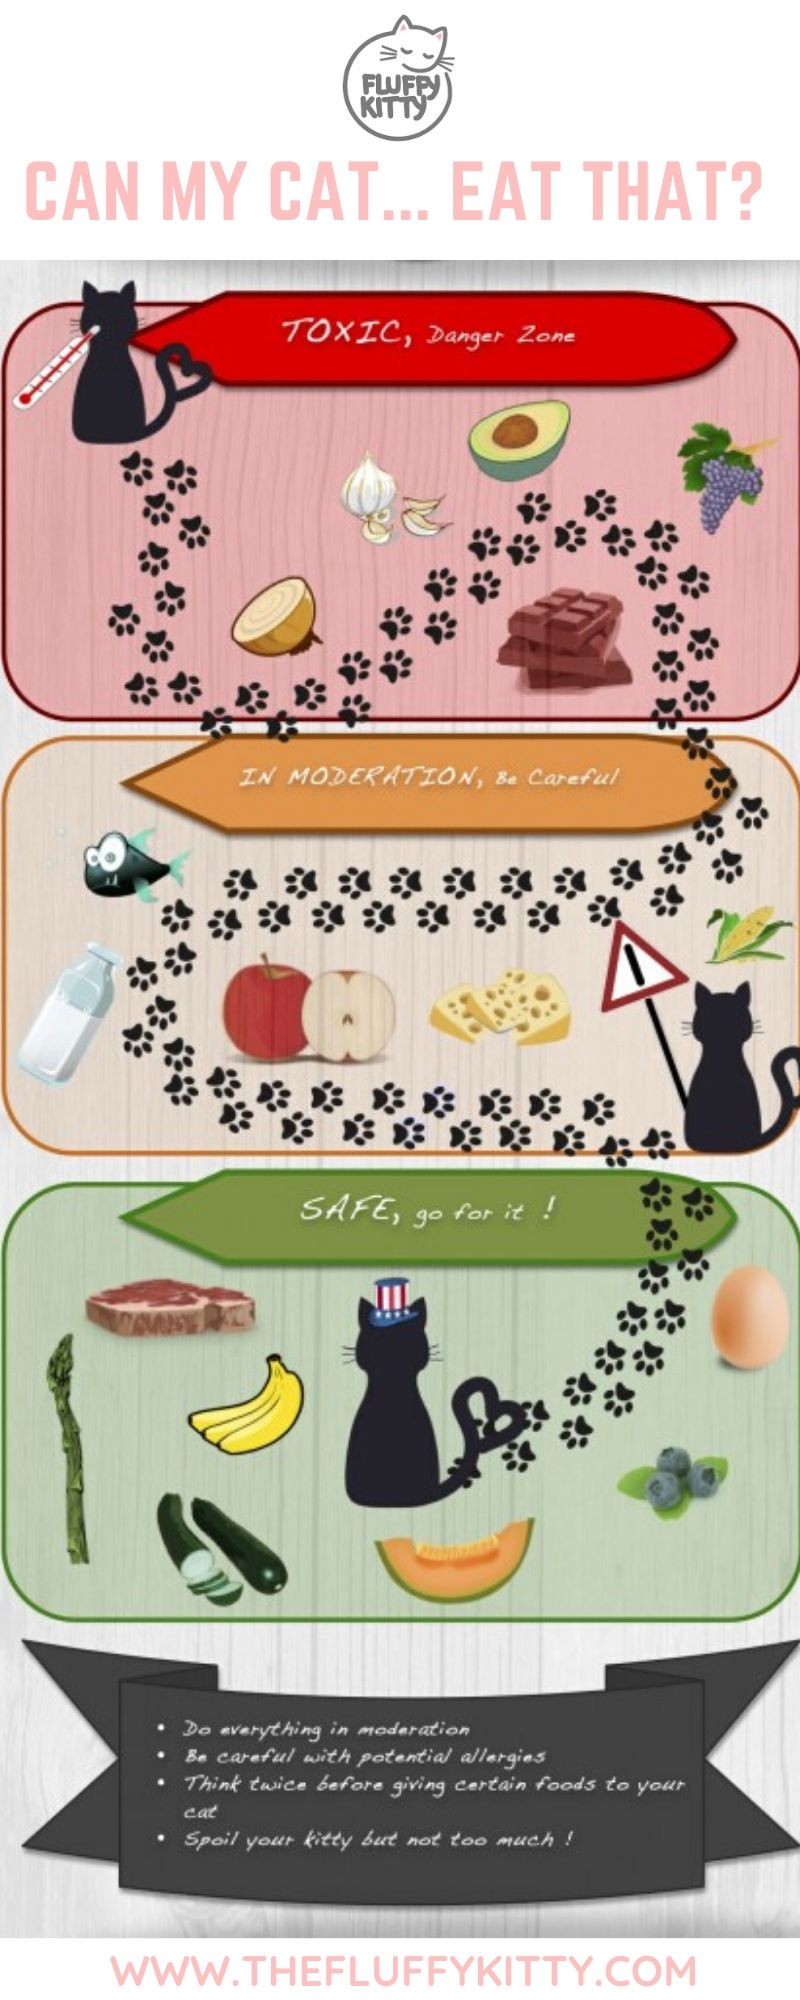 15 Human Foods Cats Cat And Cannot Eat Catfood Cats Infographic Catlovers Www Thefluffykitty Com The Fluffy Foods Cats Can Eat What Cats Can Eat Human Food